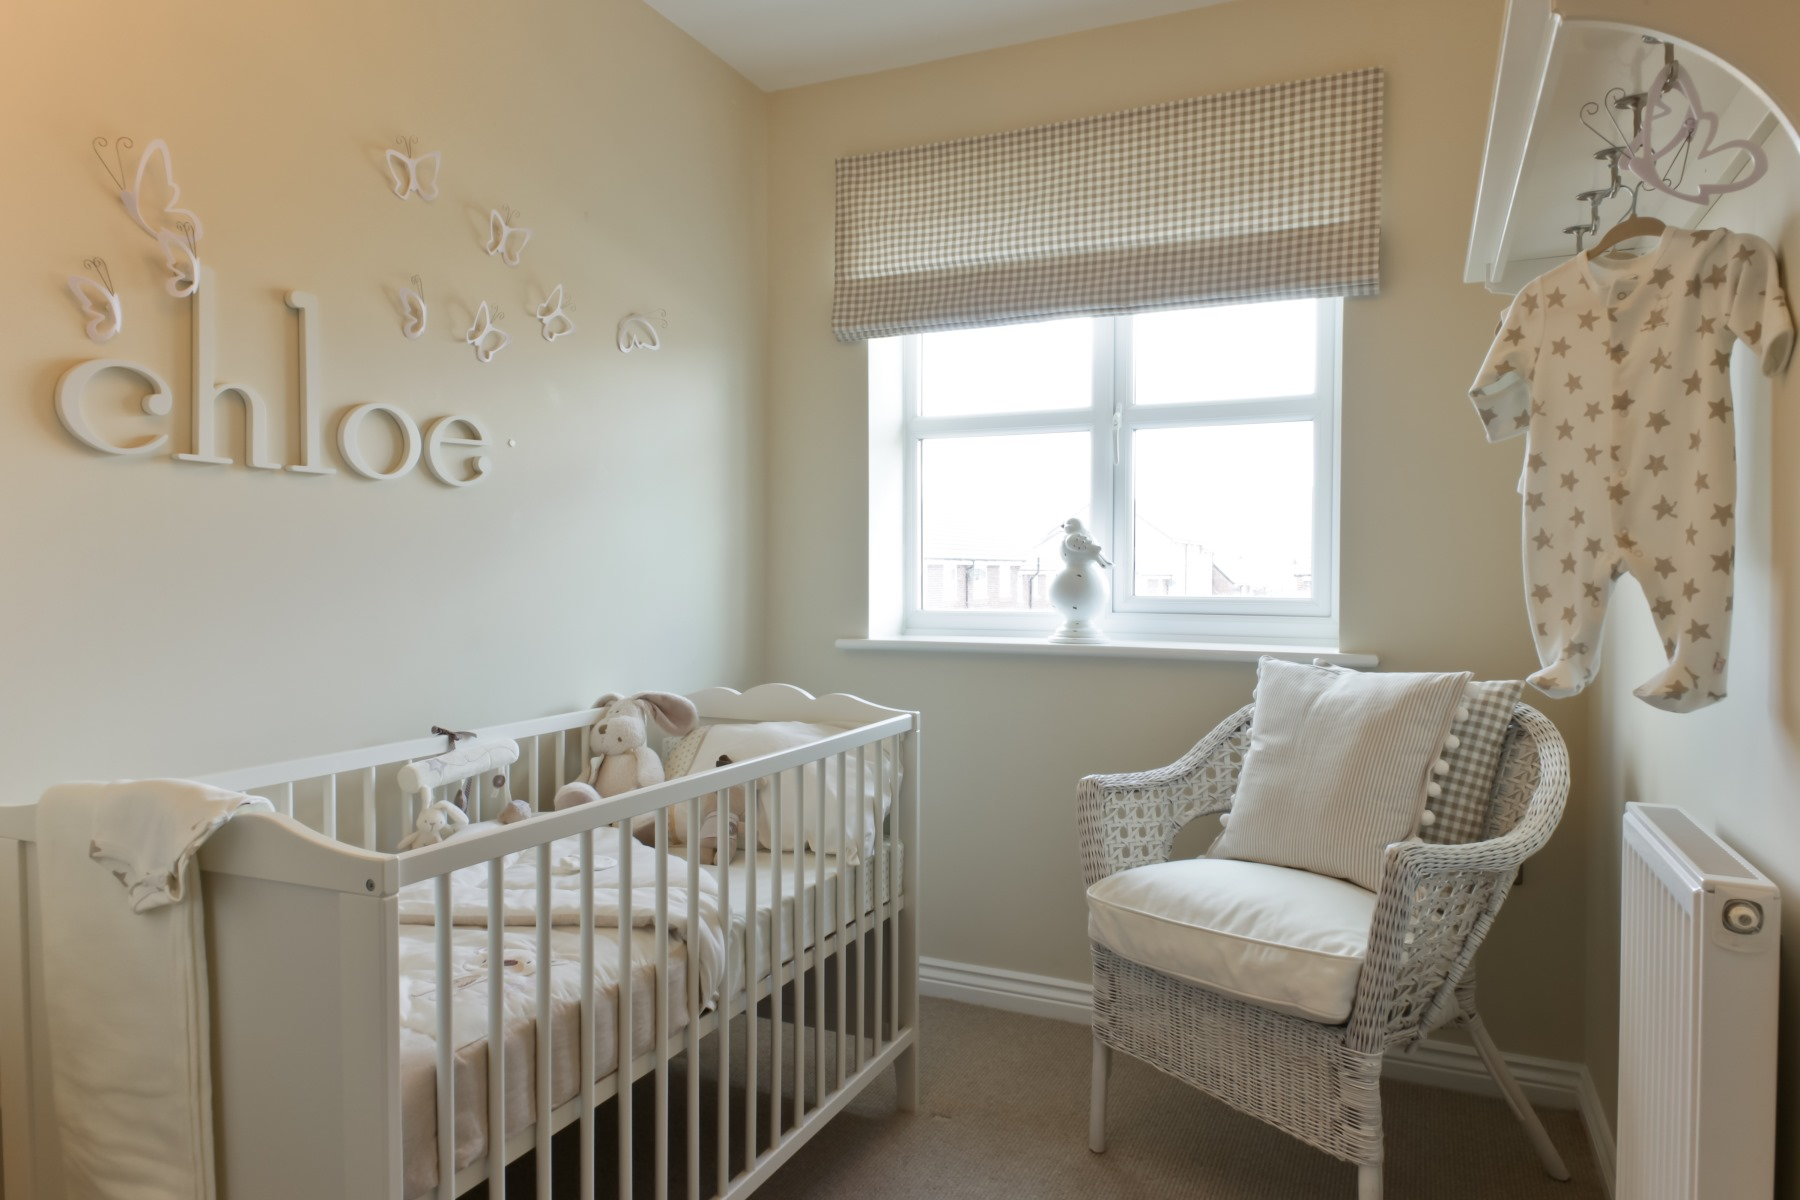 Halliford Master Nursery Bedroom 3